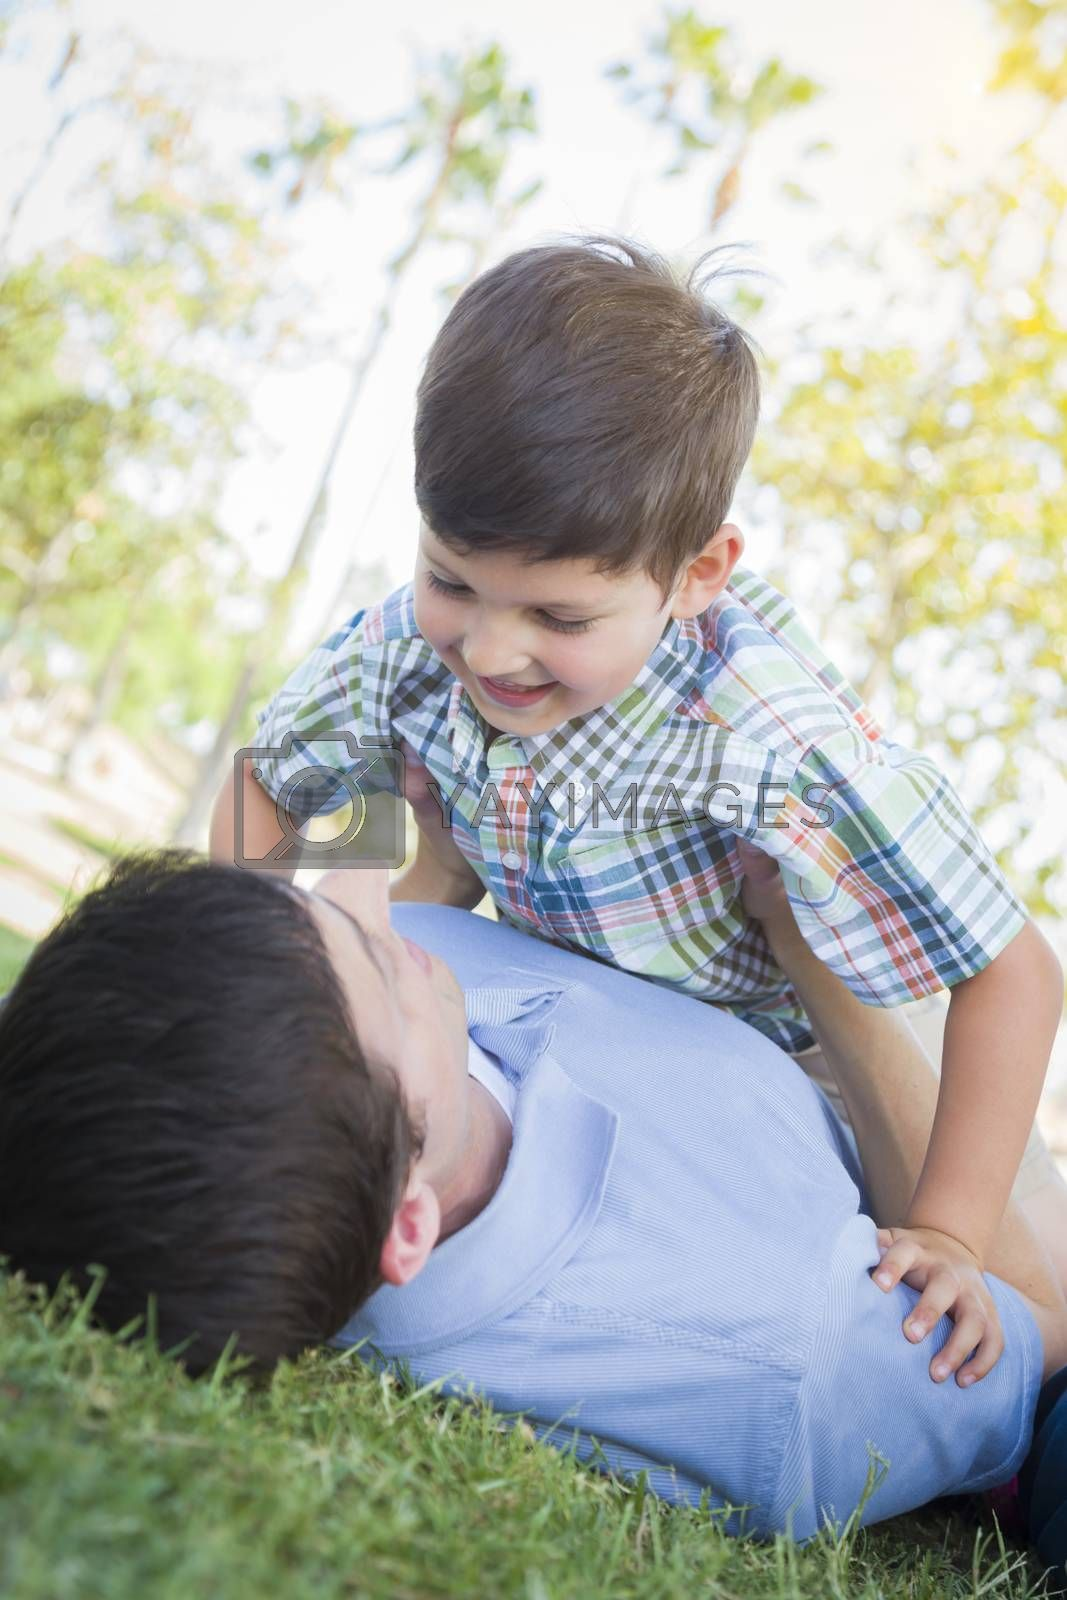 Royalty free image of Father and Son Playing Together in the Park by Feverpitched